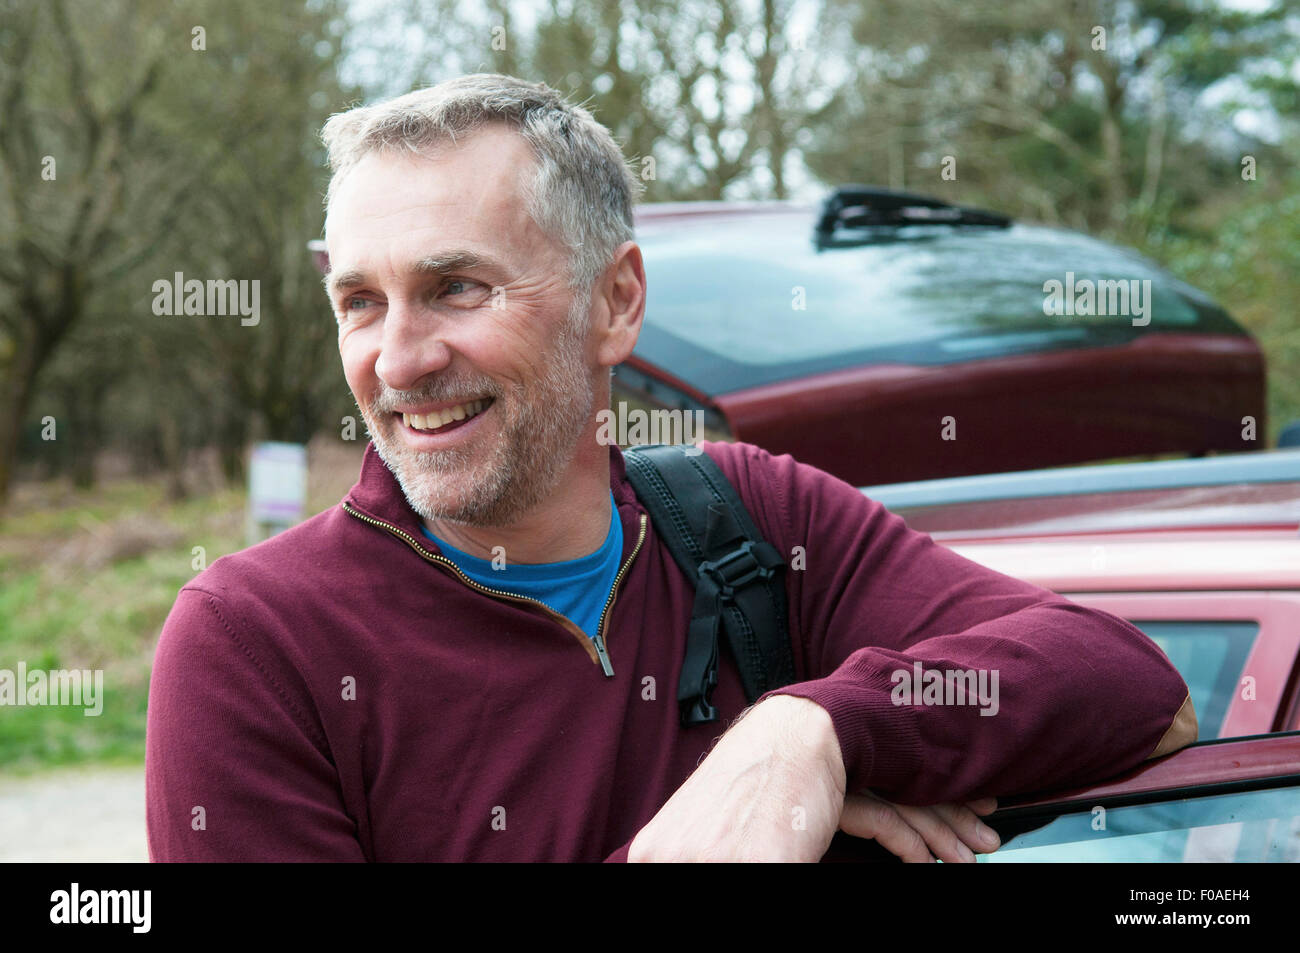 Portrait of male hiker leaning against car door - Stock Image